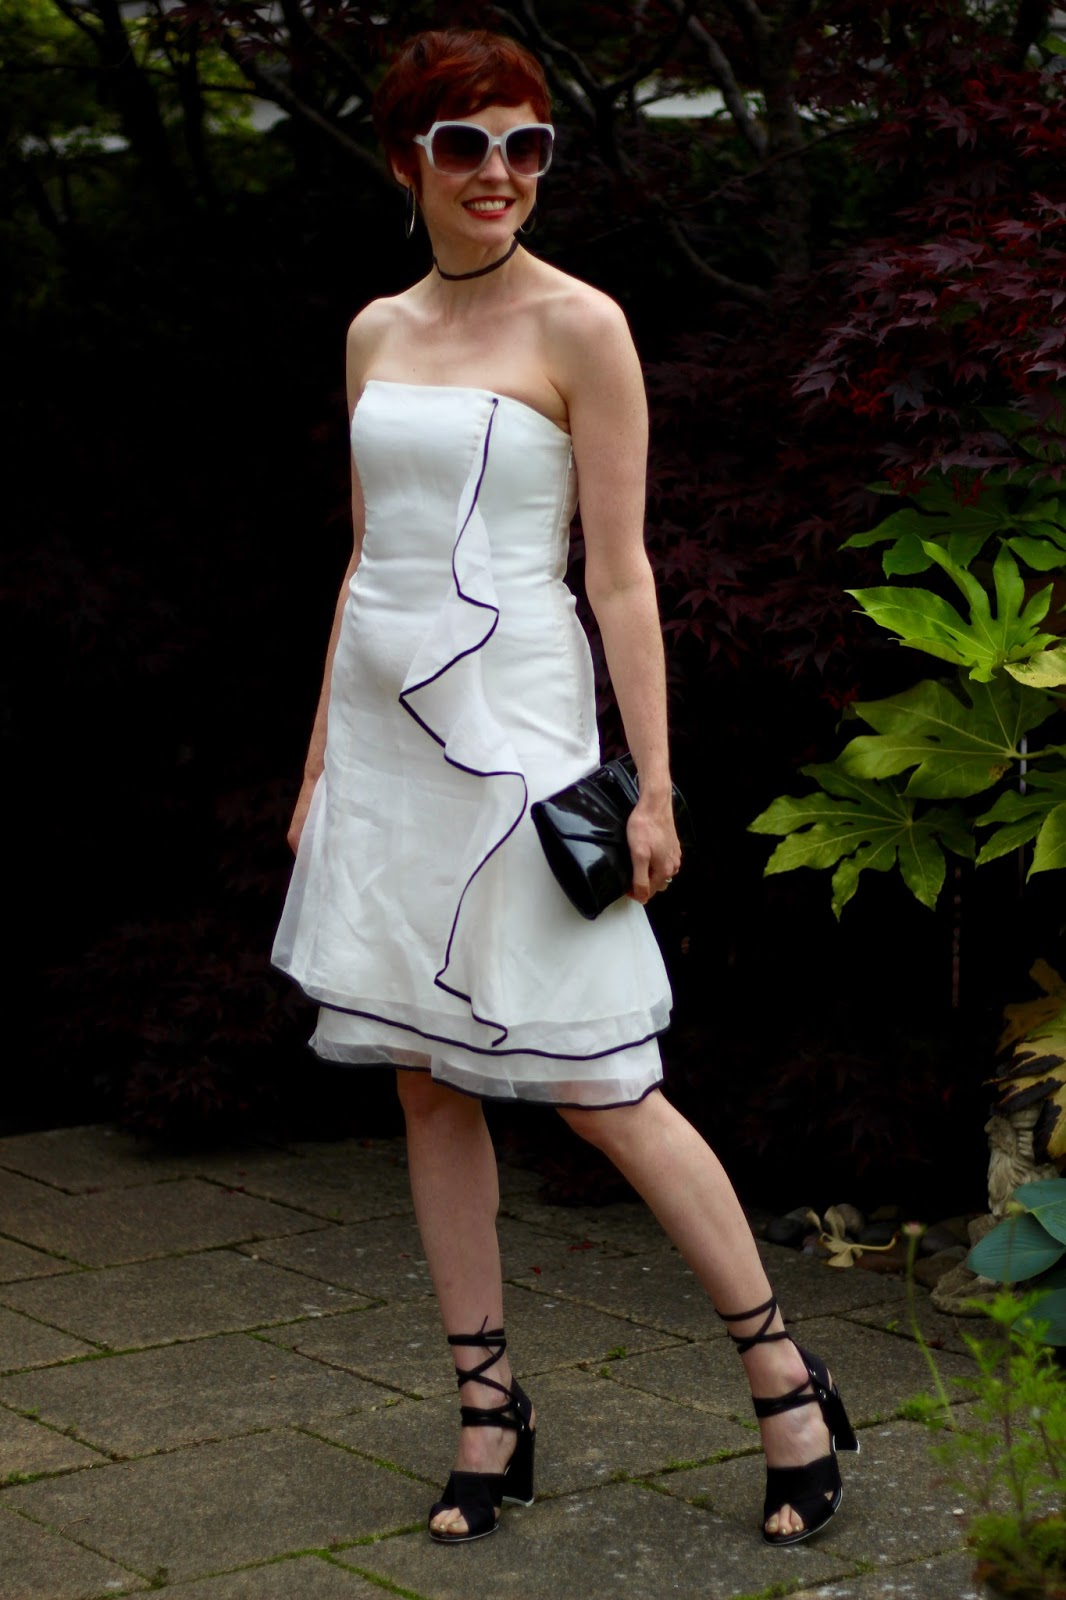 White ruffle strapless dress with black trim, topshop unique shoes, black vintage clutch.